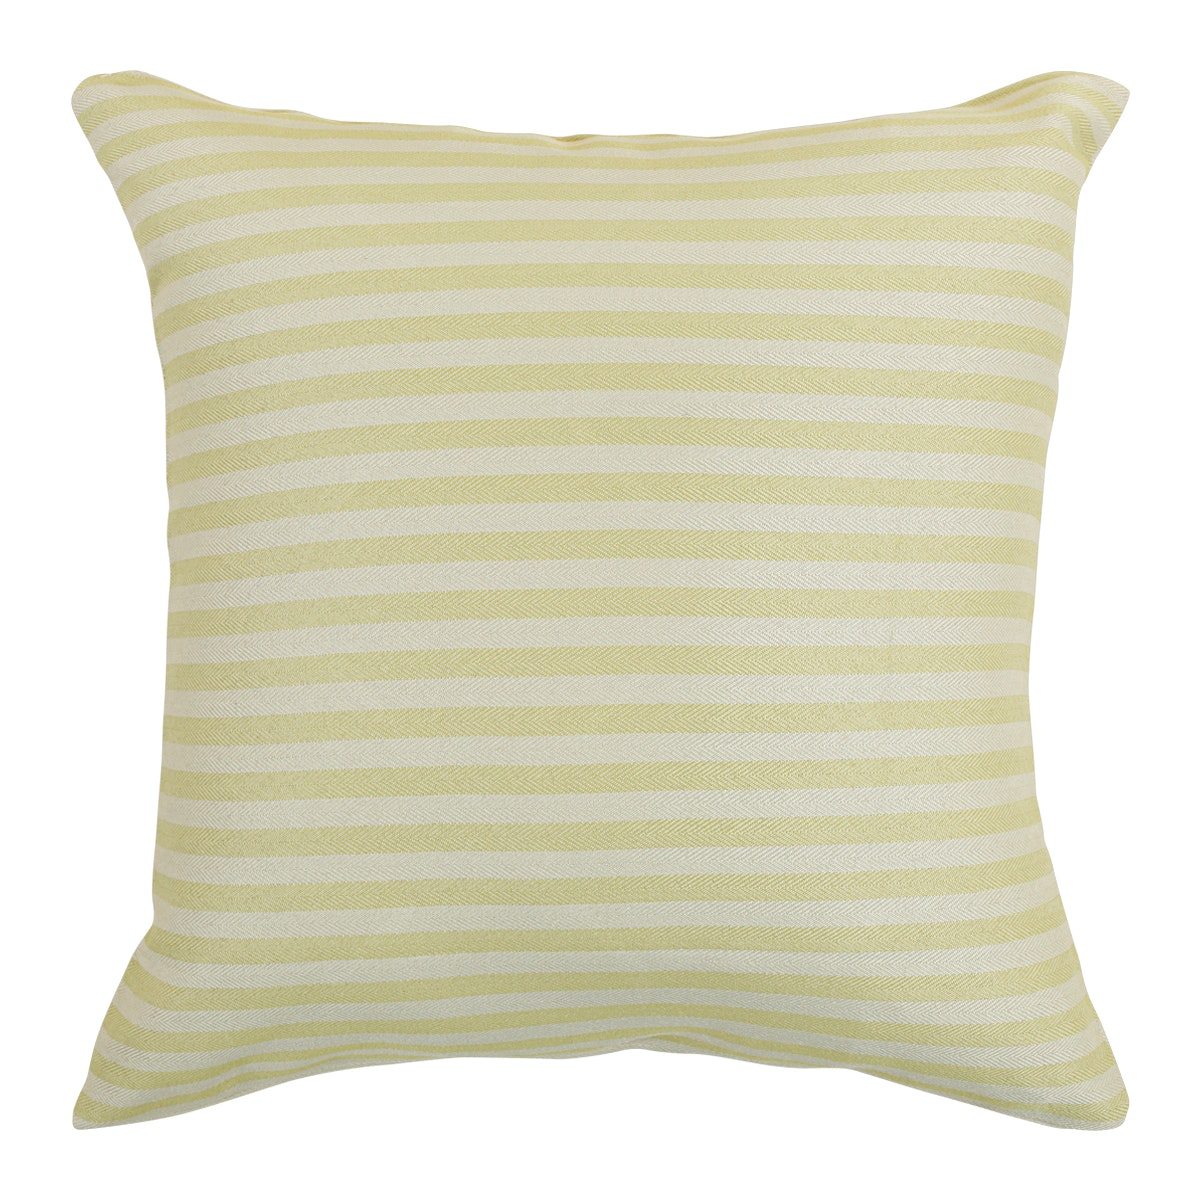 Beam and Co Cushion Cover 45x45cm Case Sundial